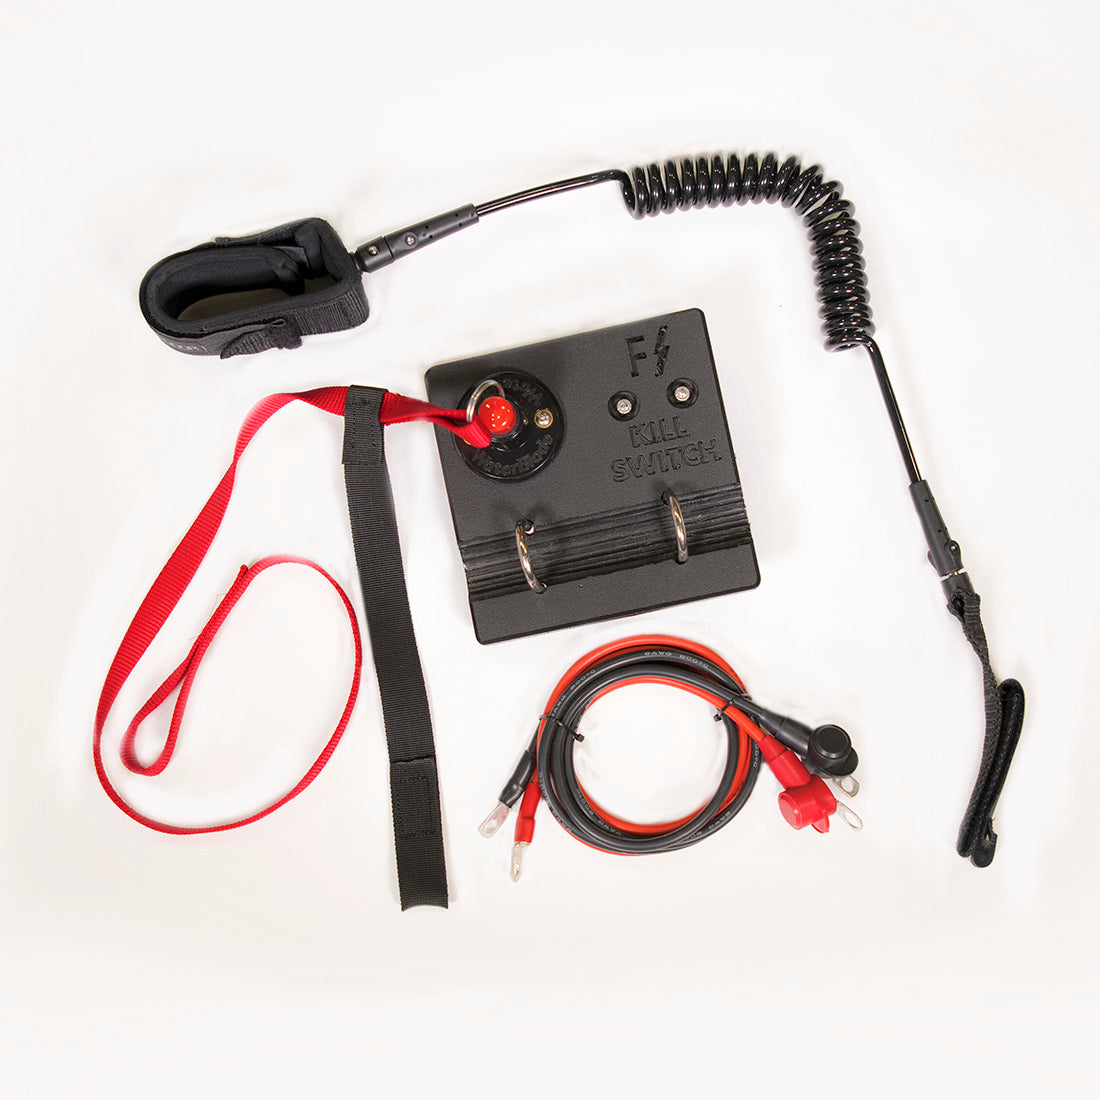 Fish Stalker Universal Marine Kill Switch Kit Accessories 4theoutdoors Canada SUP outdoors